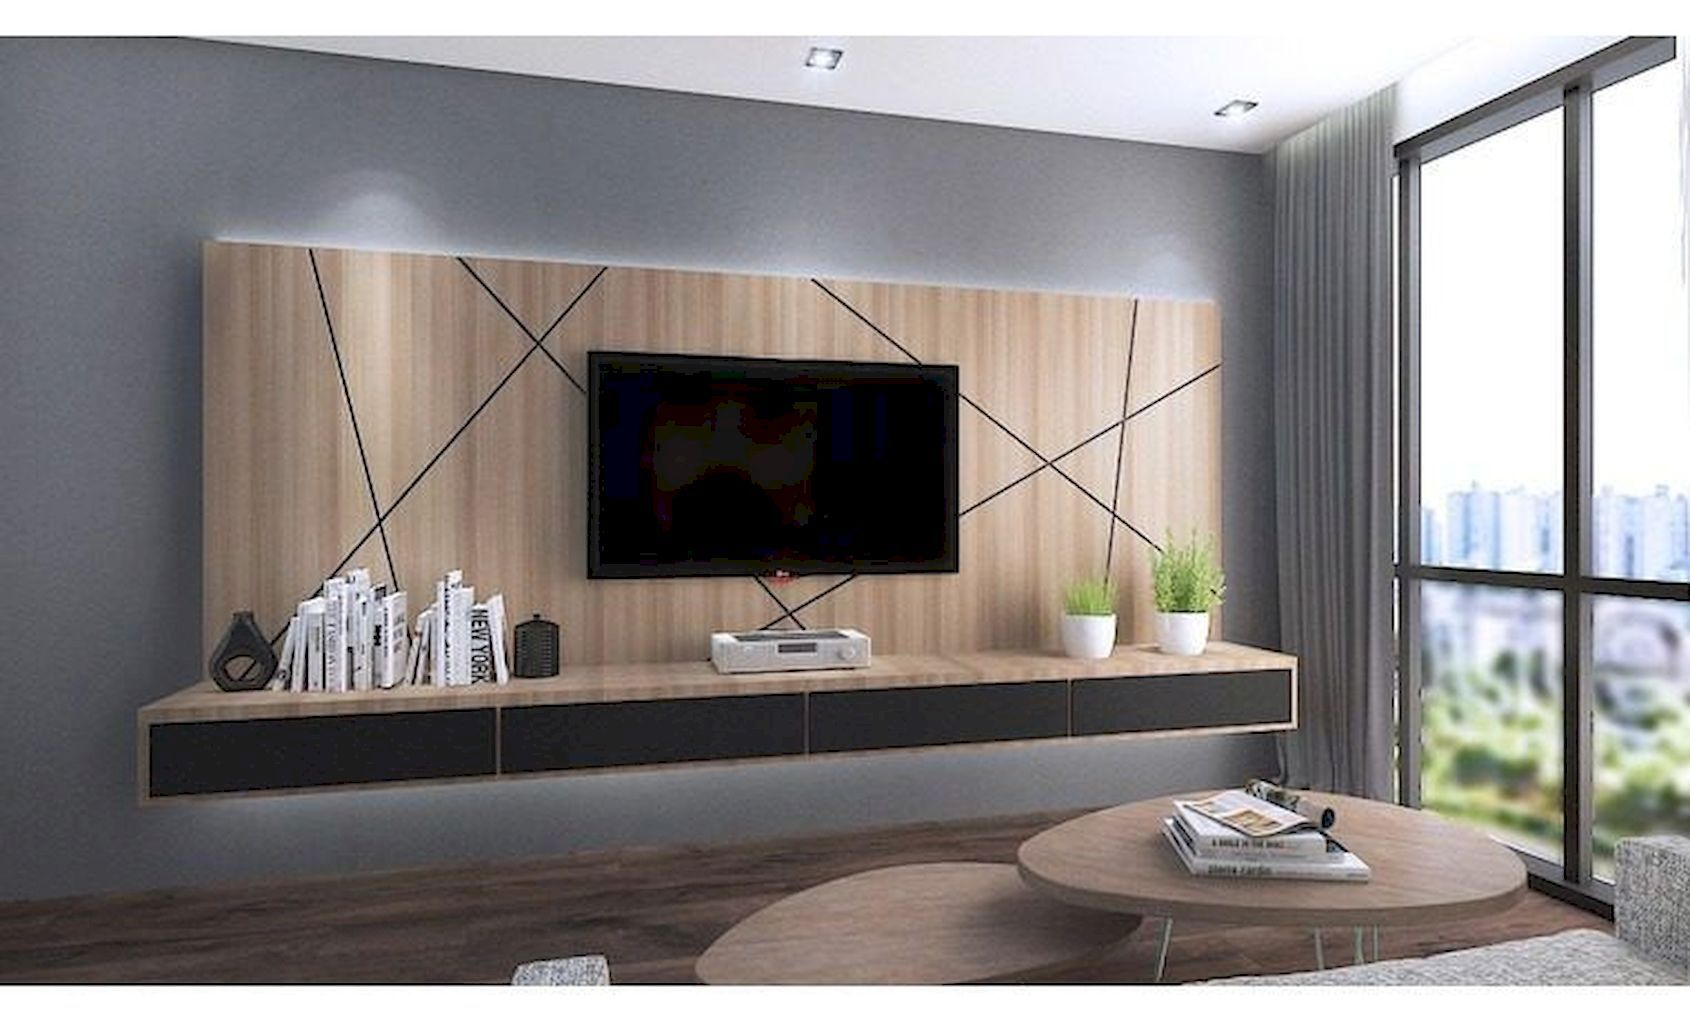 Adorable 121 Simple Cool Creative Wall Decorating Ideas That Are Easy To Apply In Your Home Https Bedroom Tv Wall Living Room Tv Wall Wall Tv Unit Design